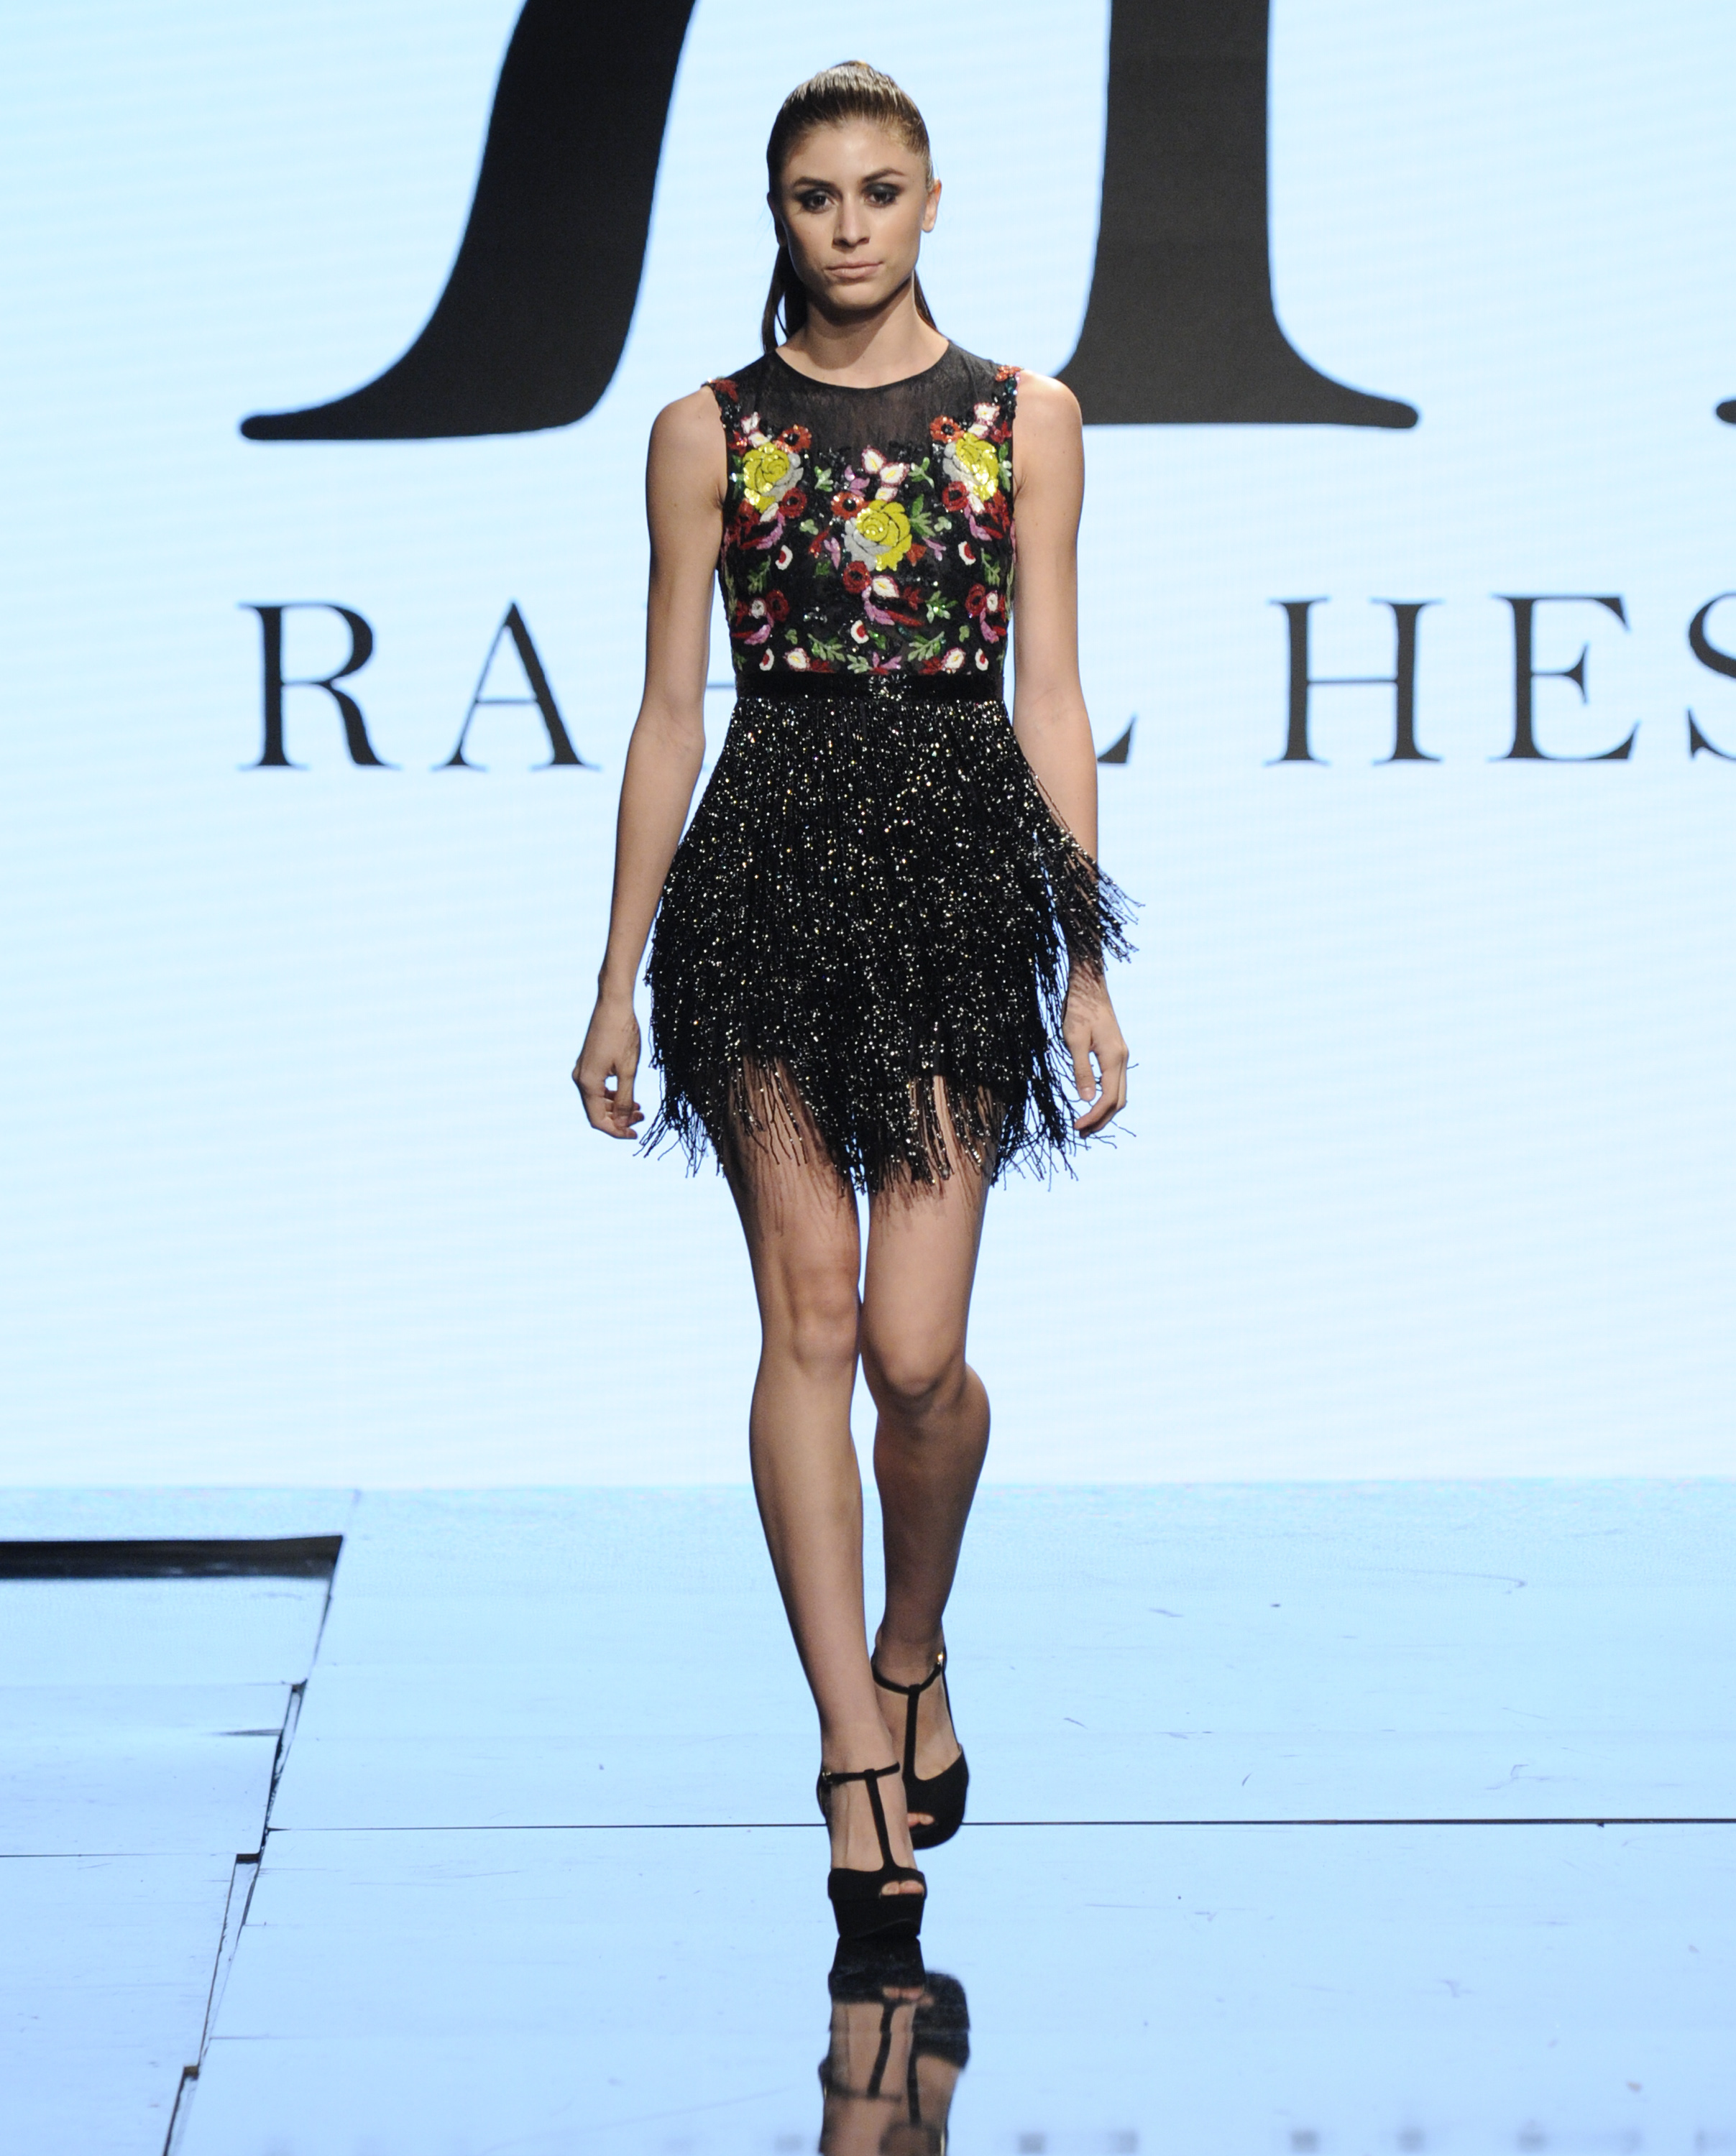 Rahil Hasan At Art Hearts Fashion Los Angeles Fashion Week Presented By Aids Healthcare